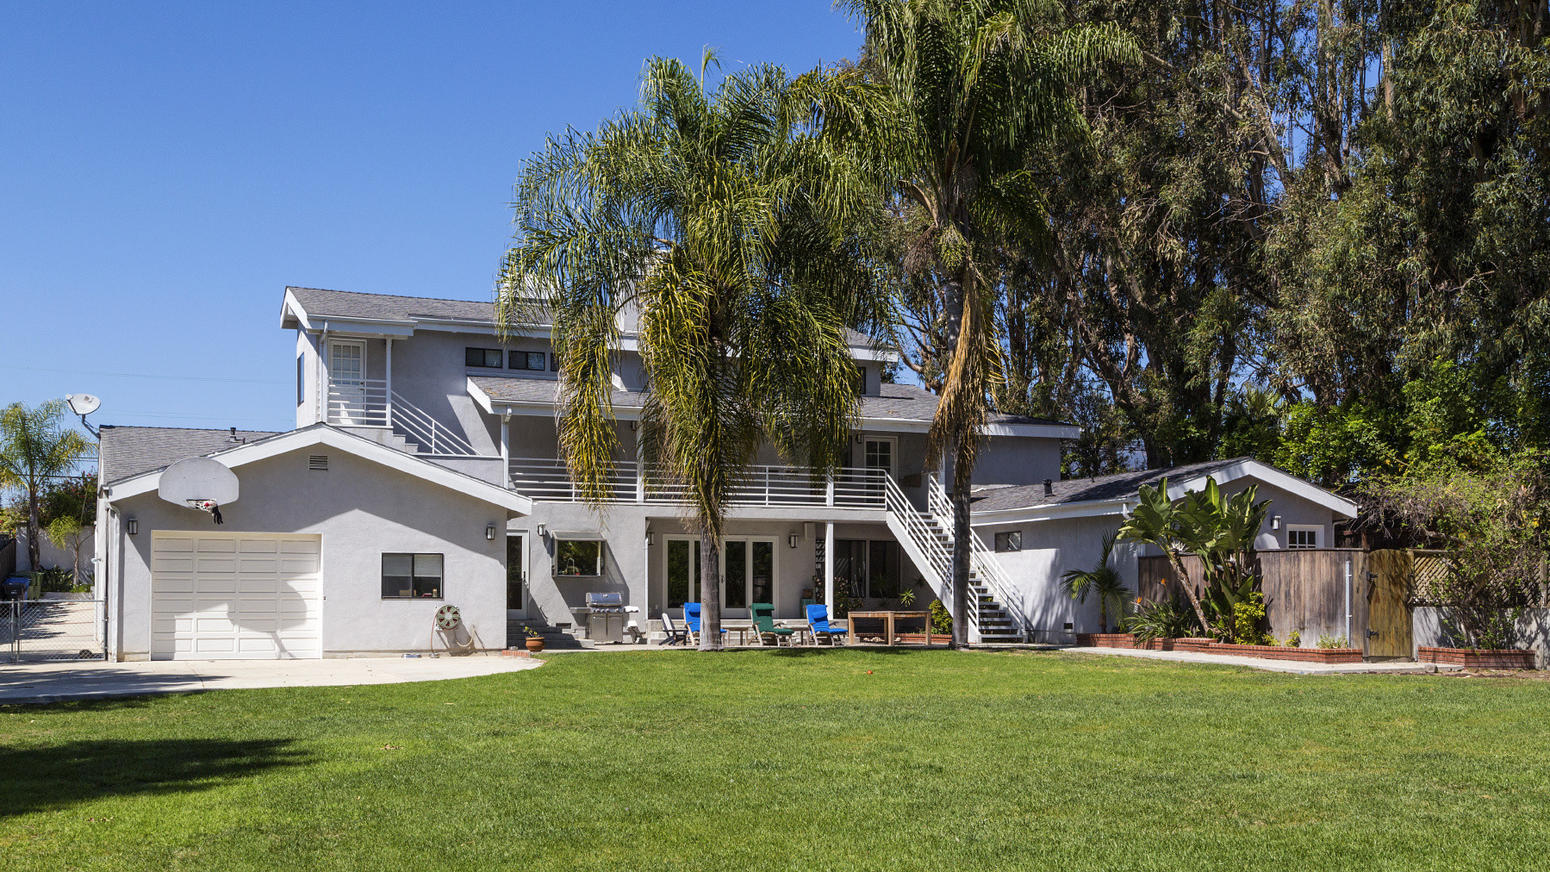 Muse matt bellamy compra la seconda casa a malibu for Seconda casa